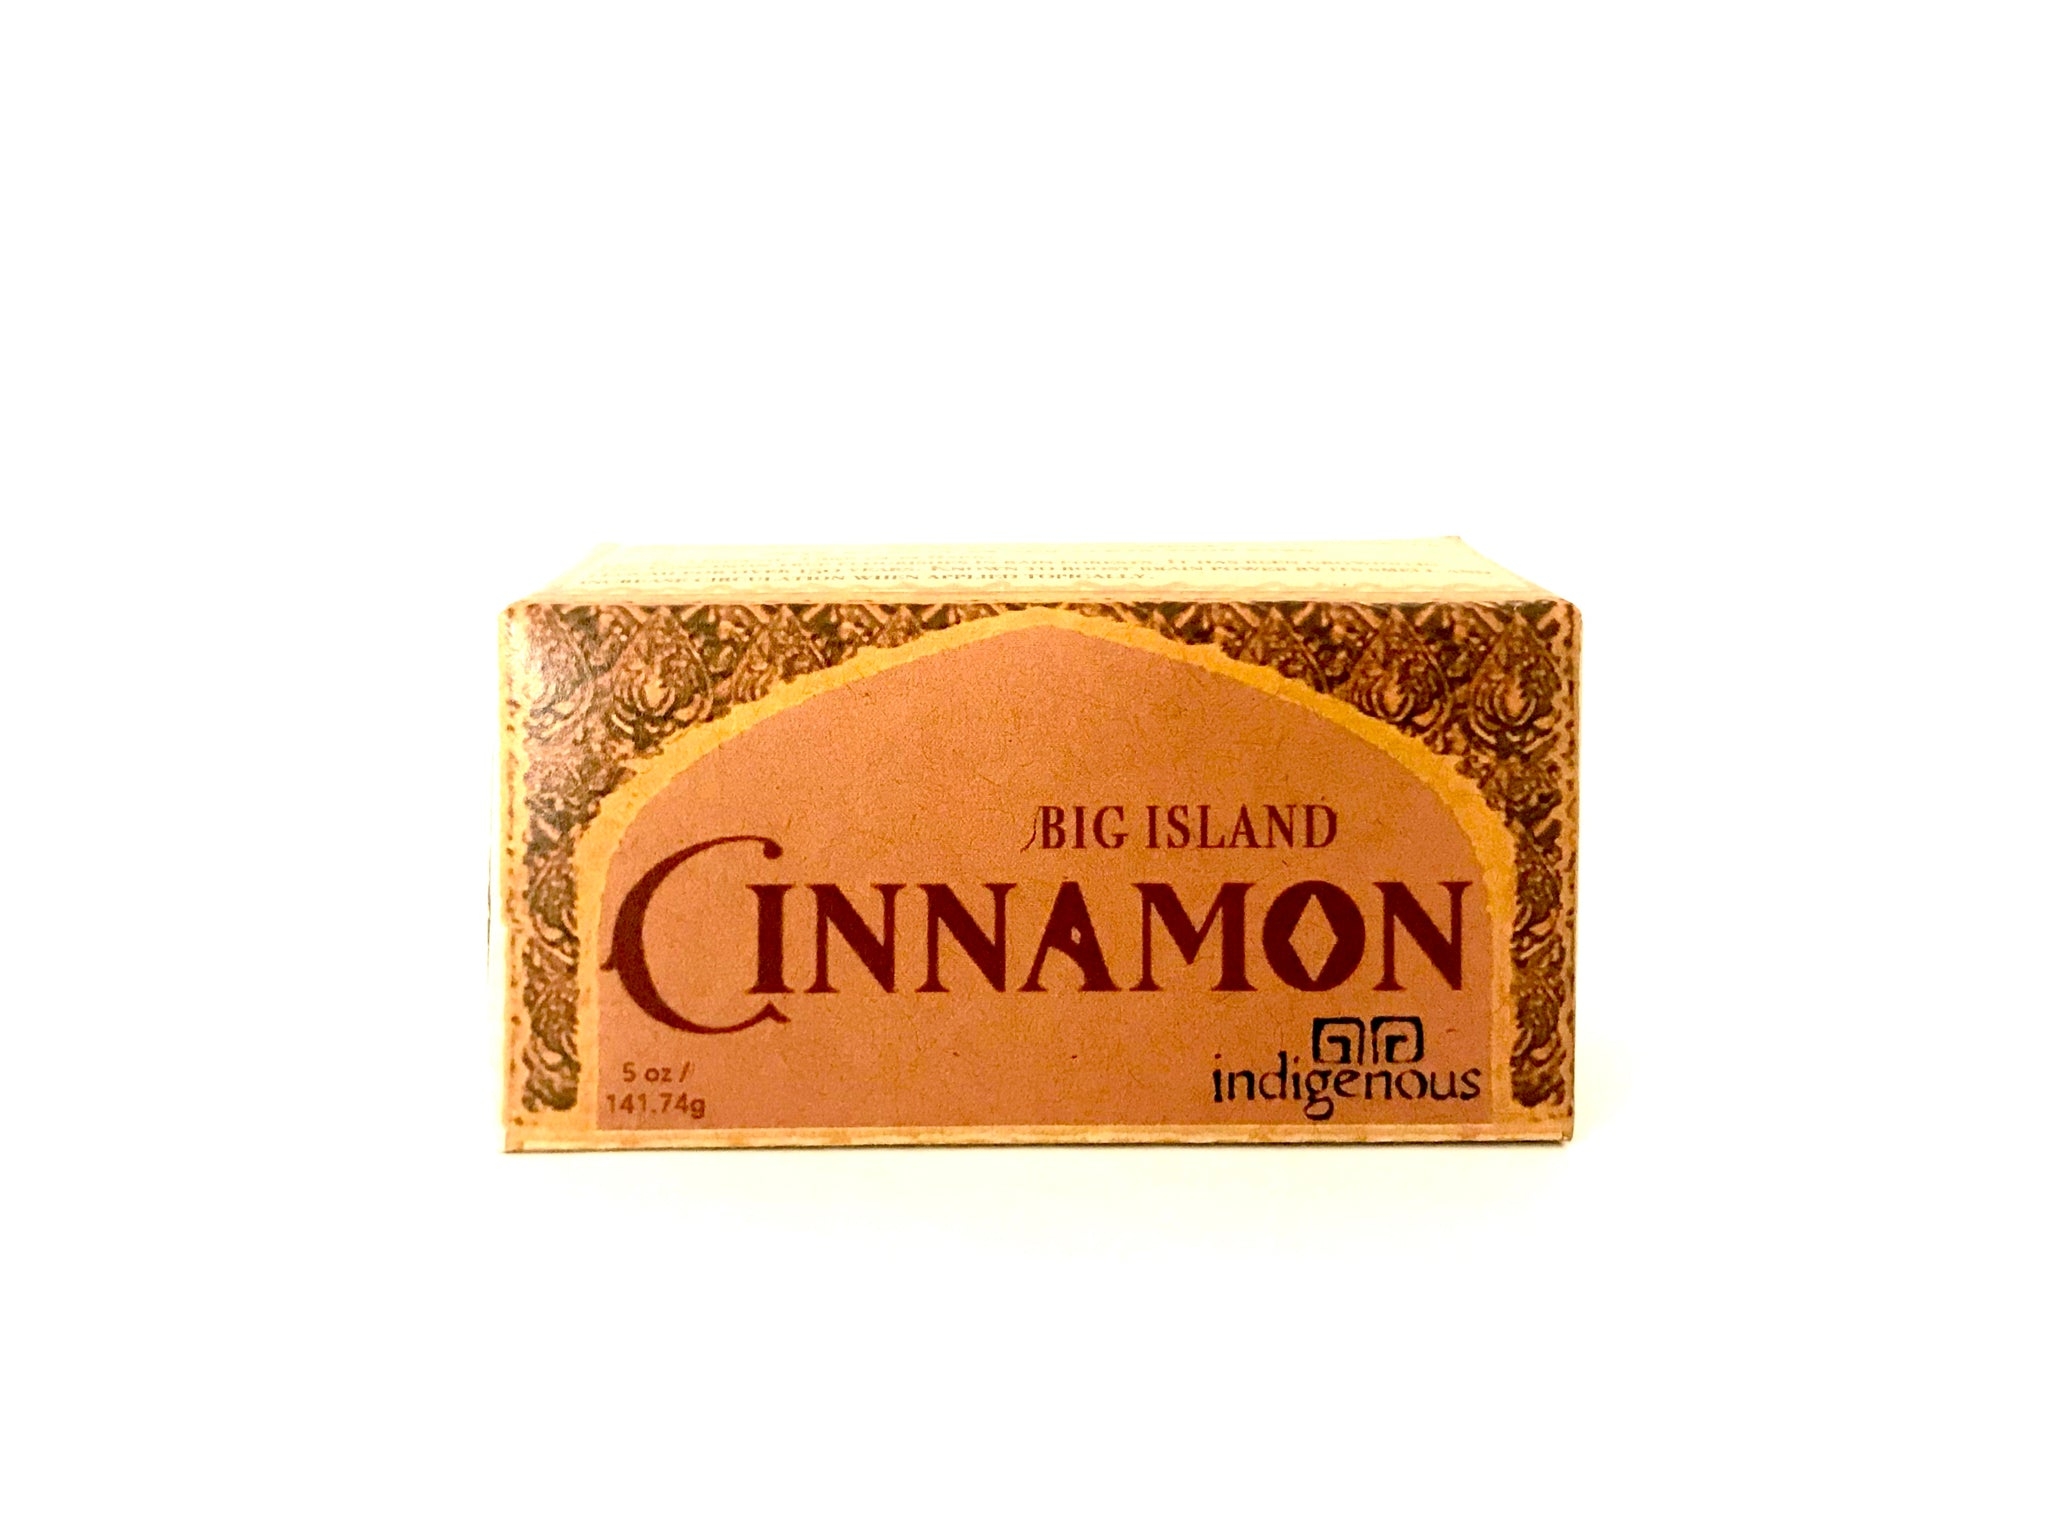 Seasonal: Big Island Cinnamon Soap